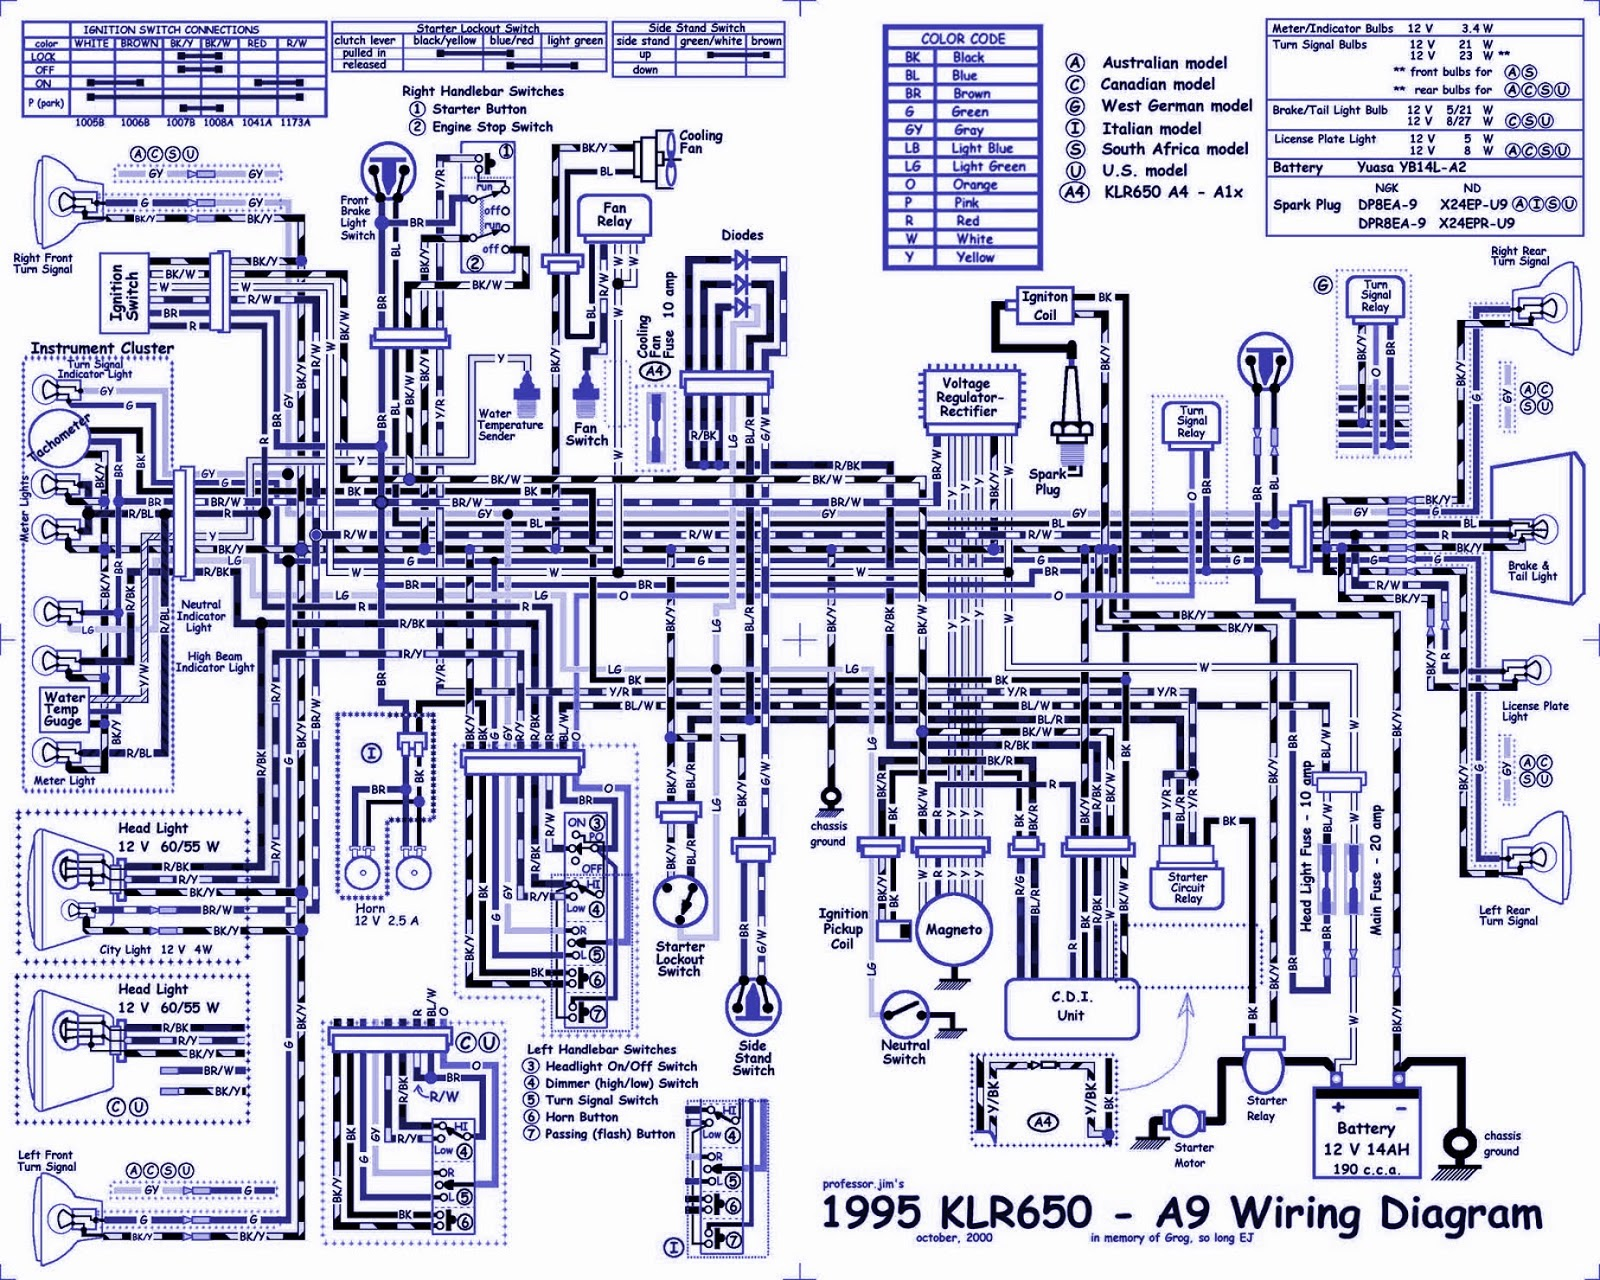 1995 Chevy Impala Ss Engine Diagram Electrical Schematics 2001 S10 Wiring Schematic 95 Illustration Of U2022 Lexus Sc300